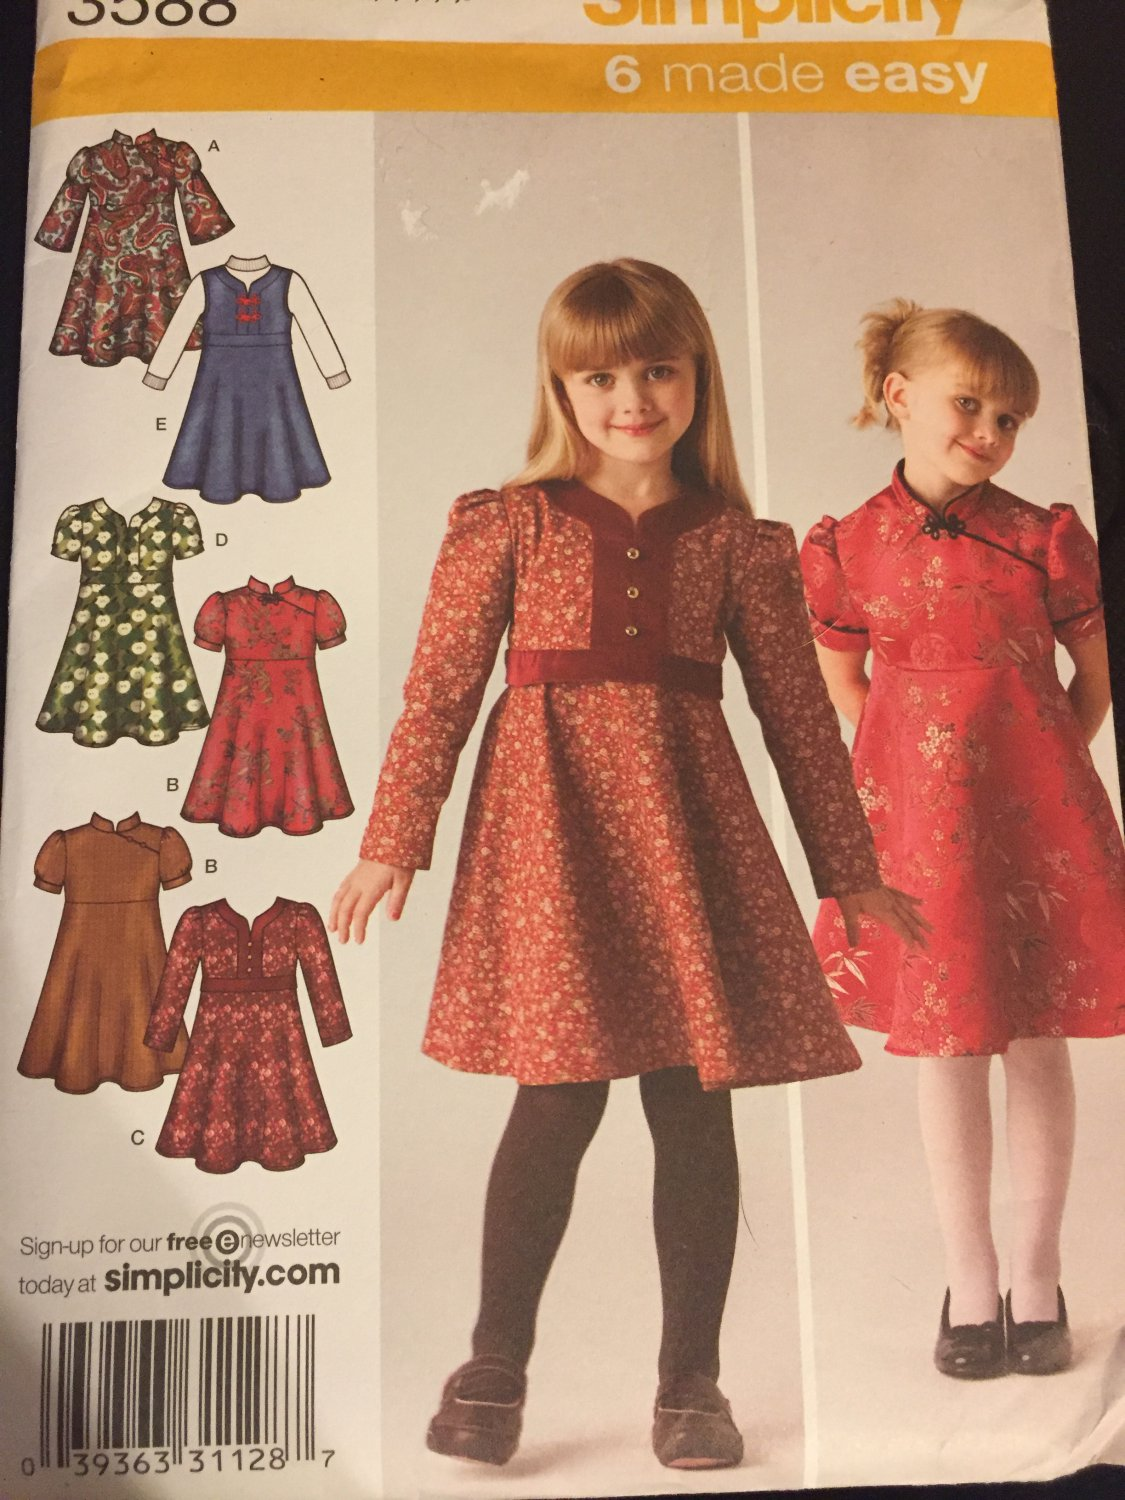 Simplicity Sewing Pattern 3588 Child's Dress or Jumper with Bodice Variations